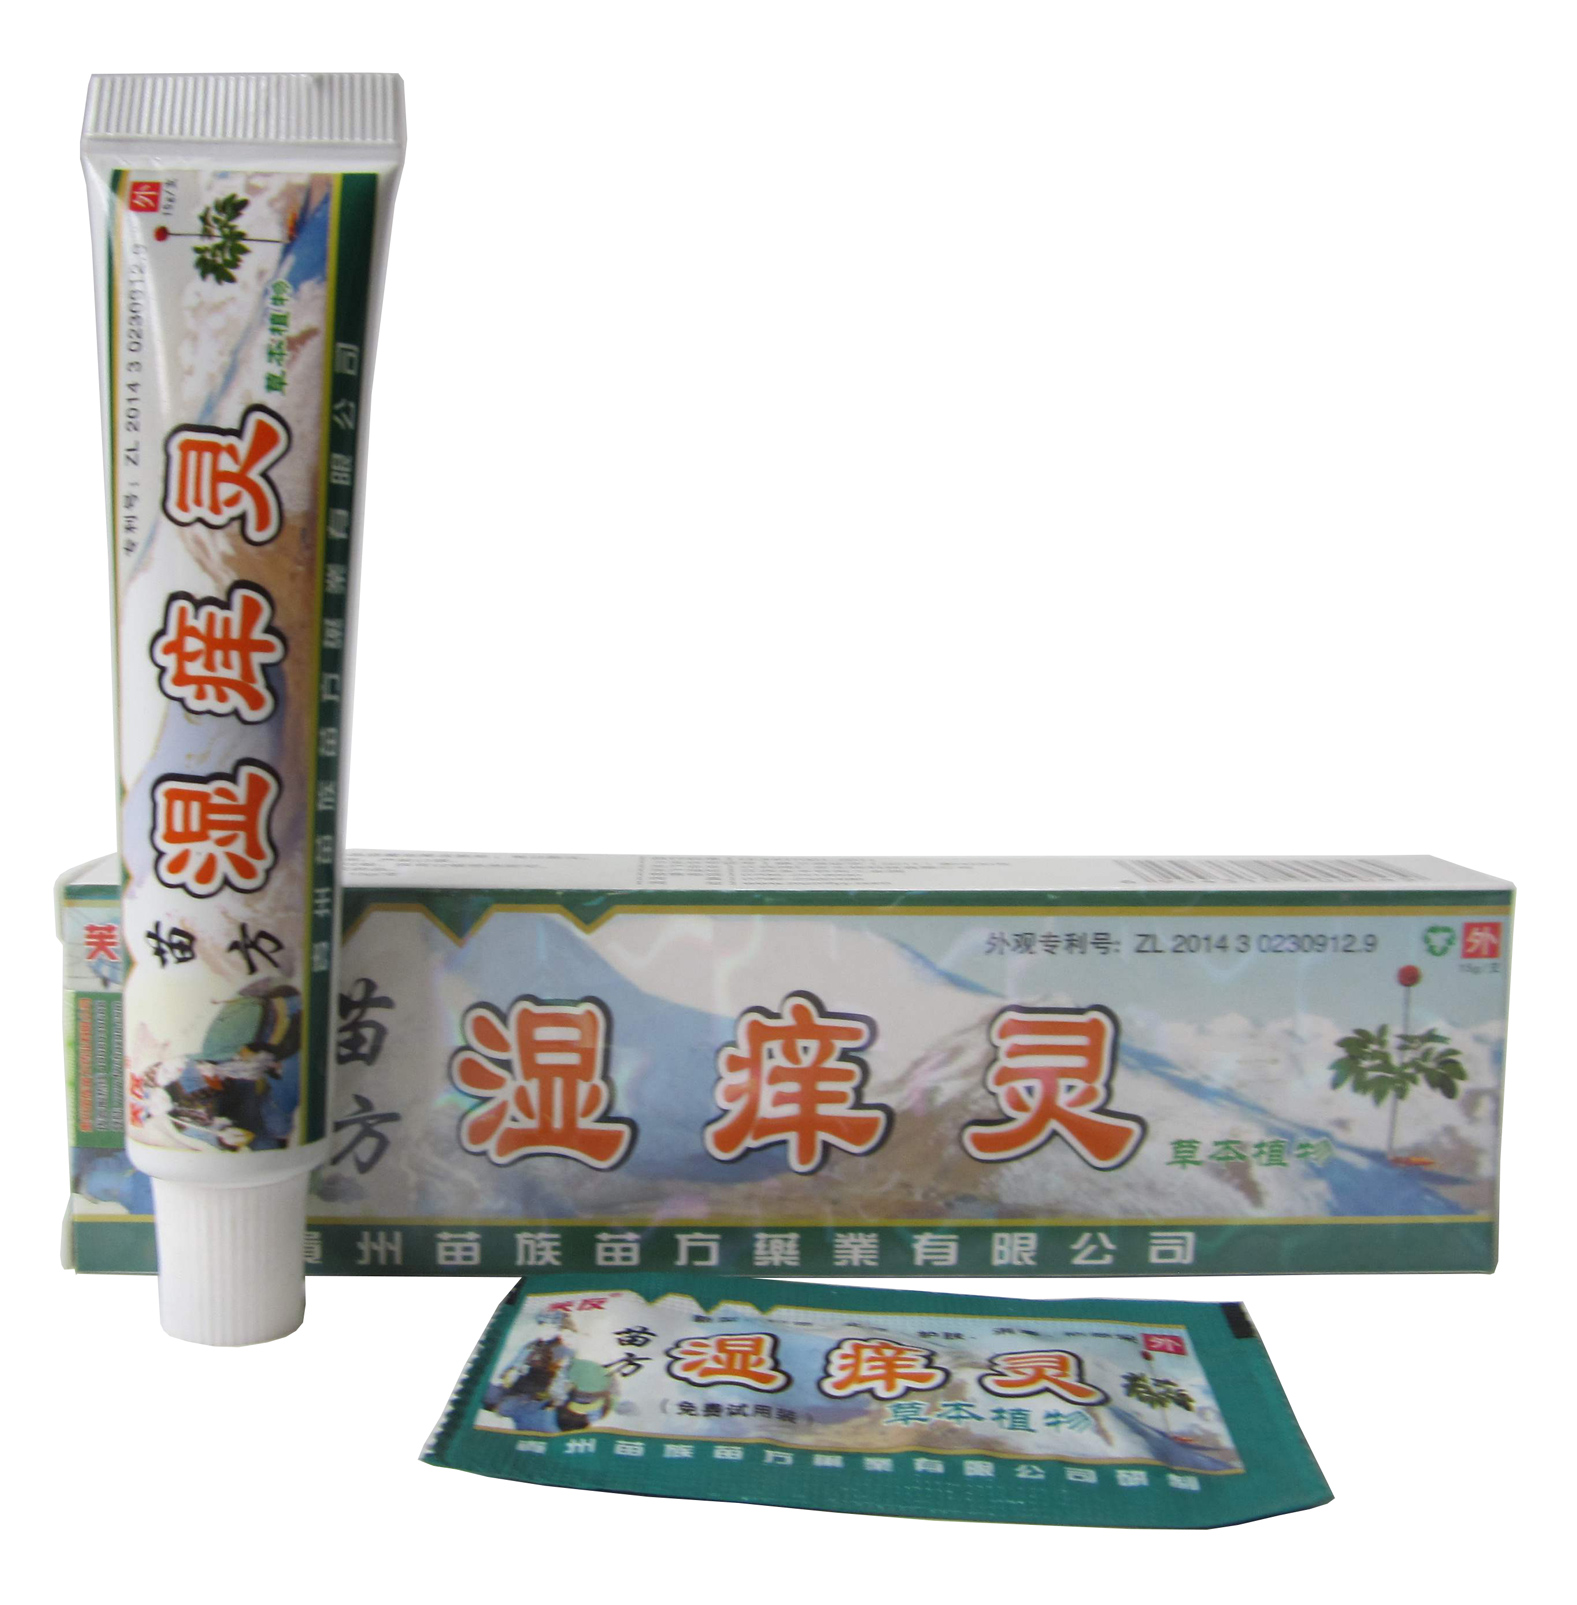 Friends fu ling herbal medicine wet itch ointment [buy 、 send 1 on the same product giveaways 1:1 reprovision] miao miao fang Wet itch cream ling